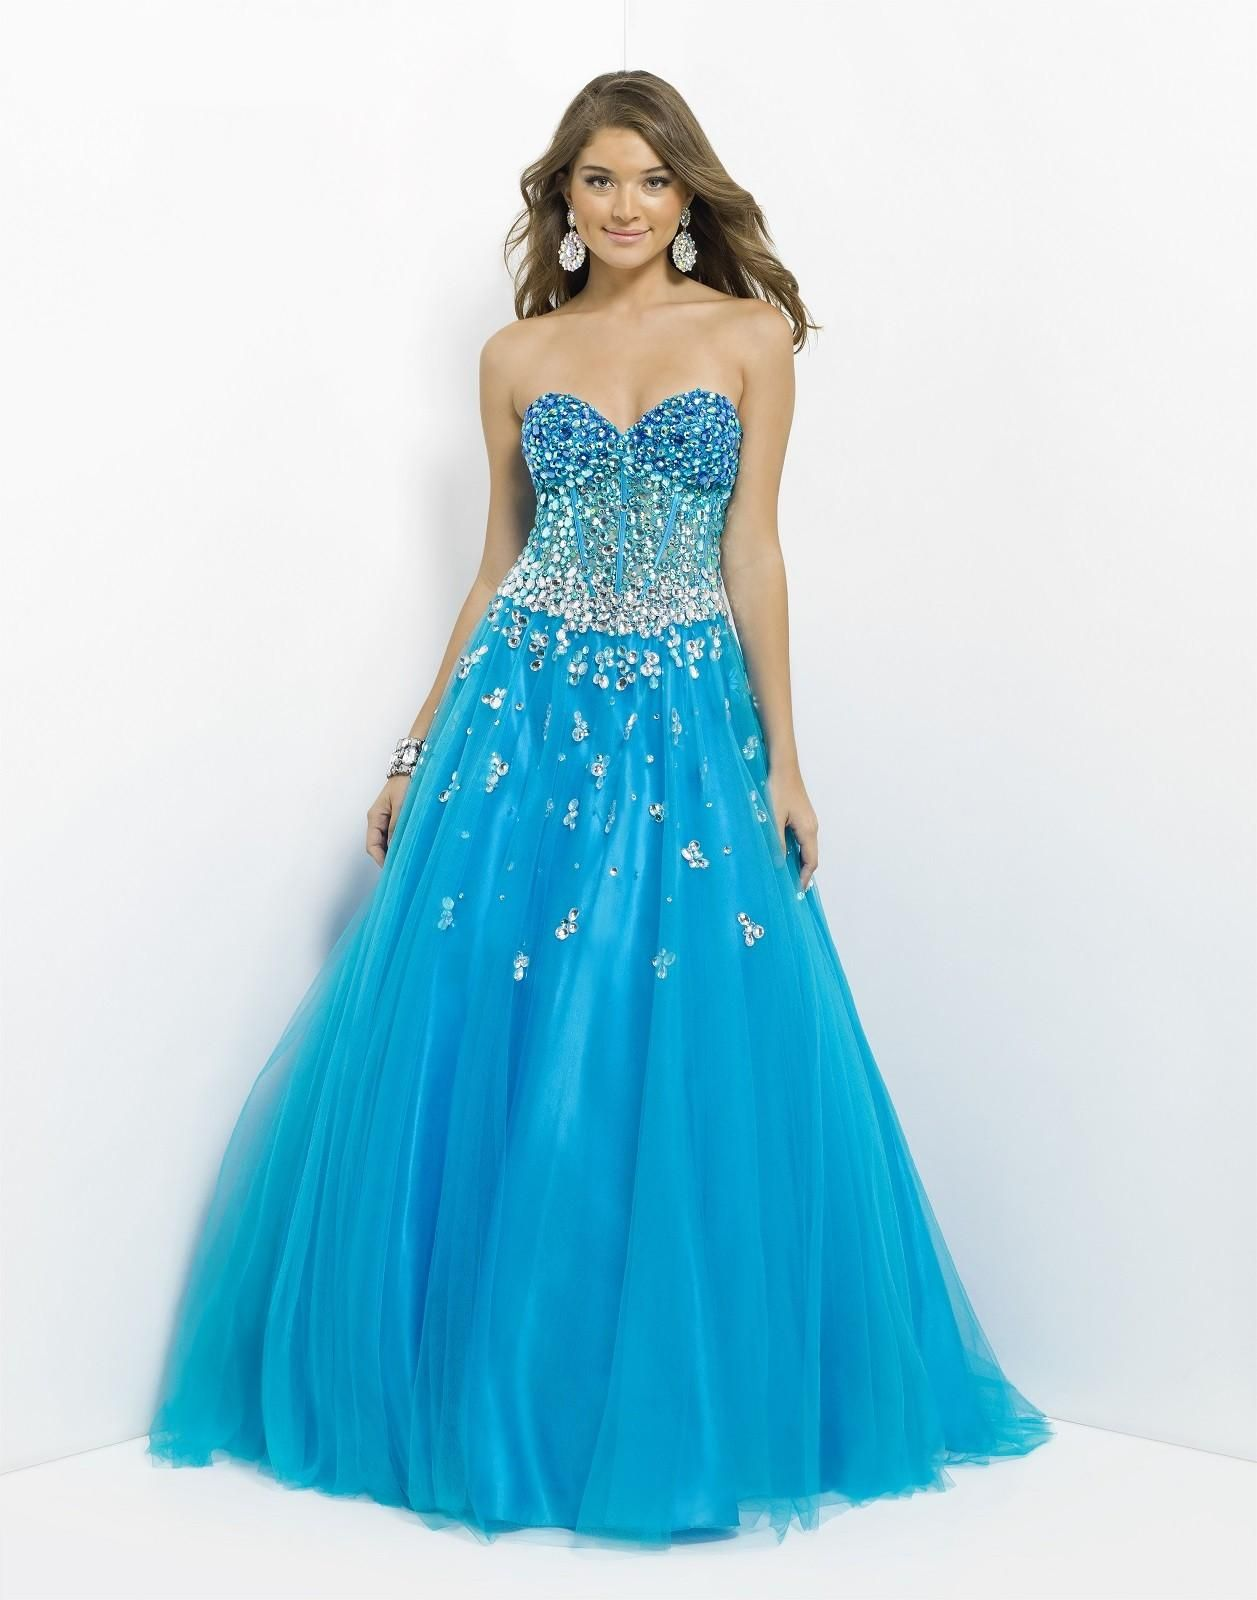 Prom dress prom dresses aquamarine blue green pinterest